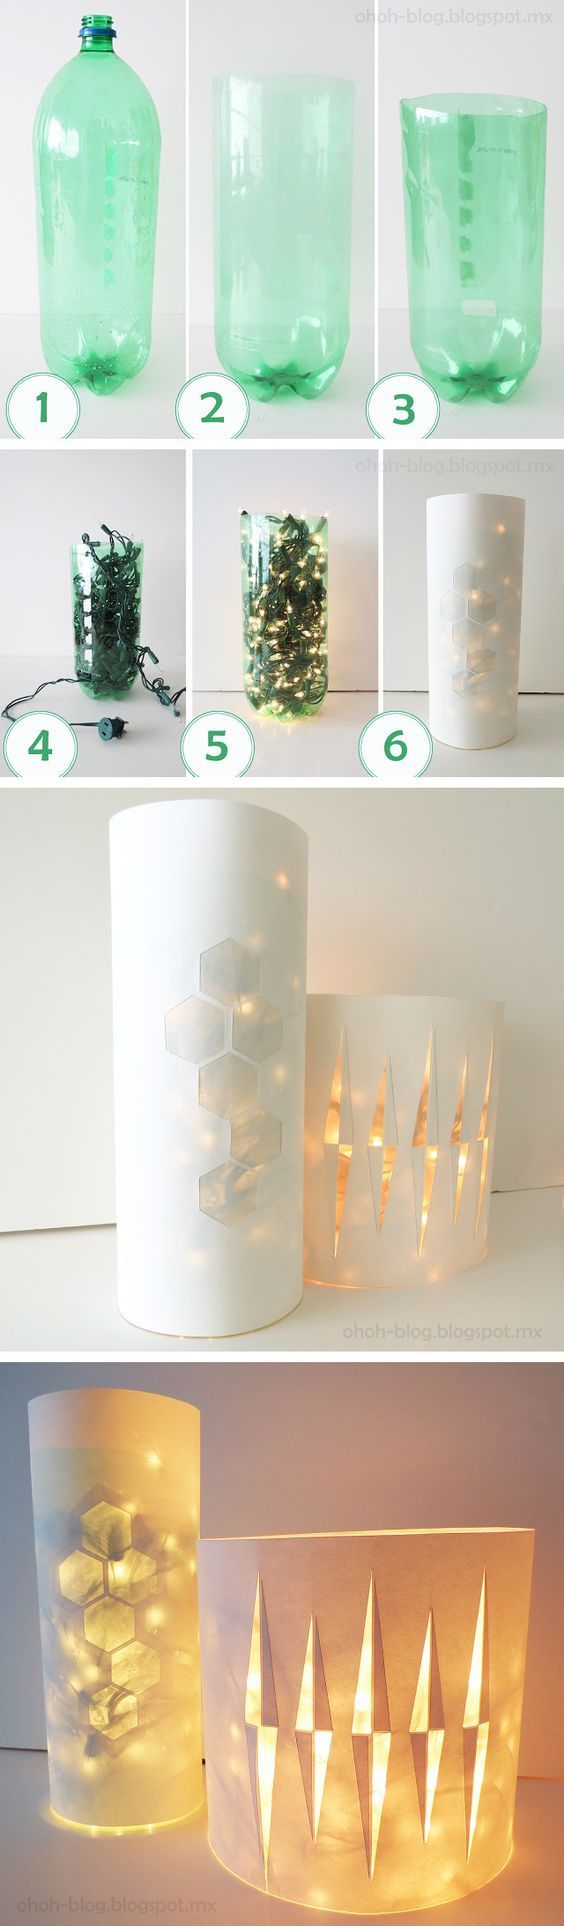 20 Creative Ways To Recycle Plastic Bottles